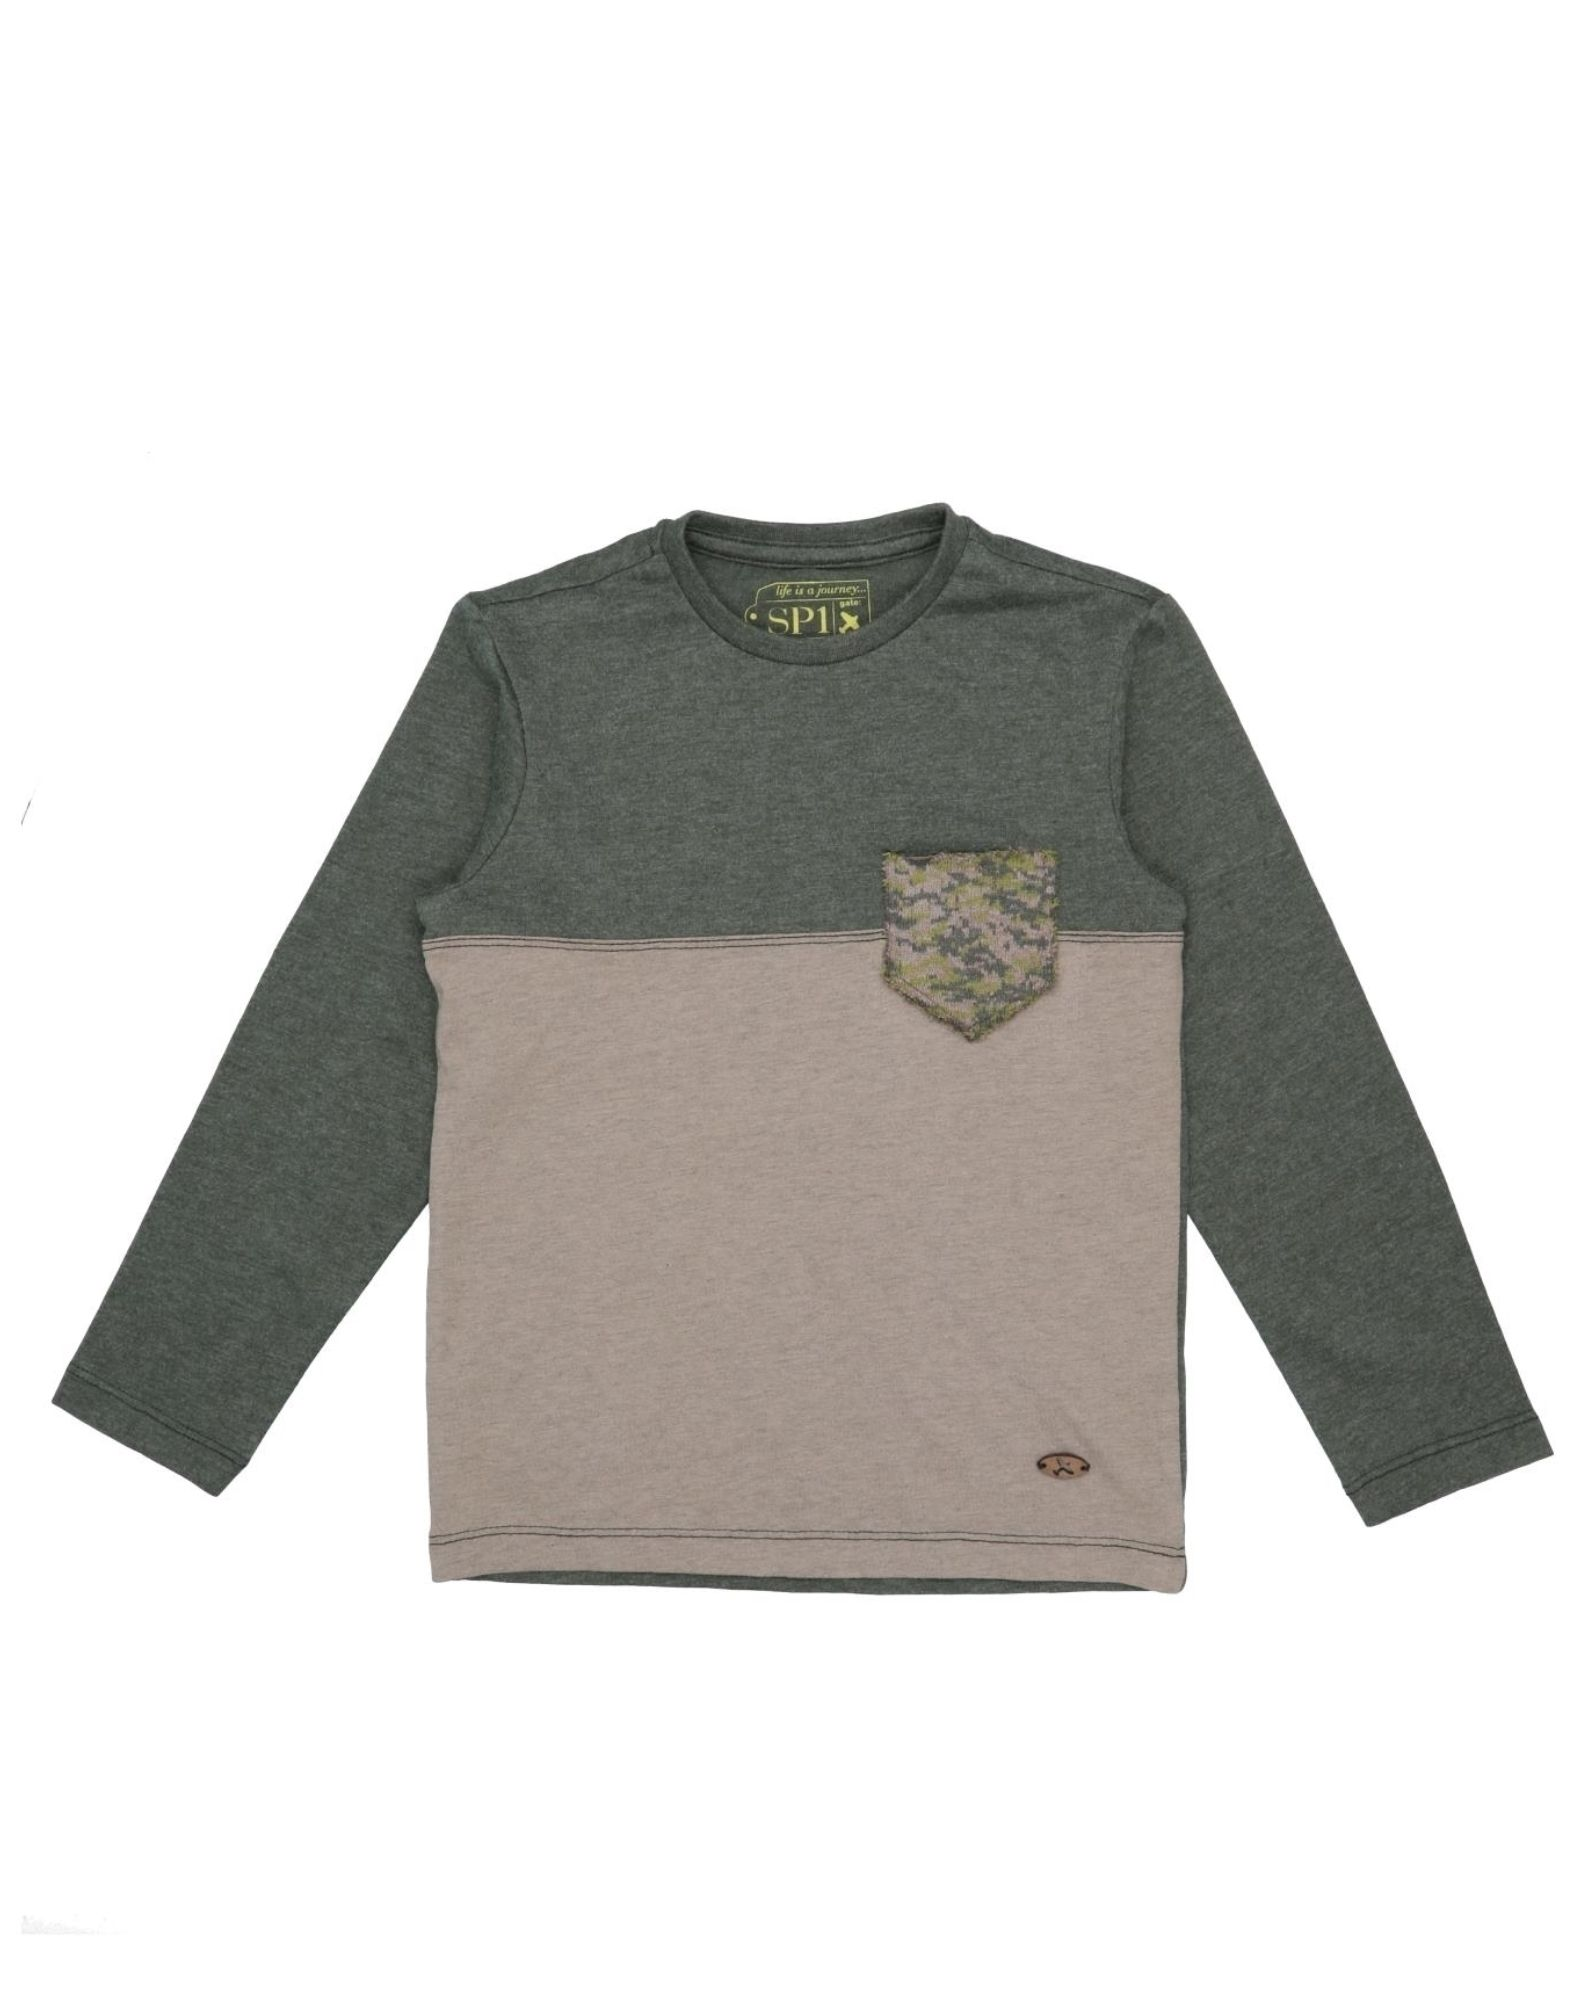 Sp1 Kids' T-shirts In Green